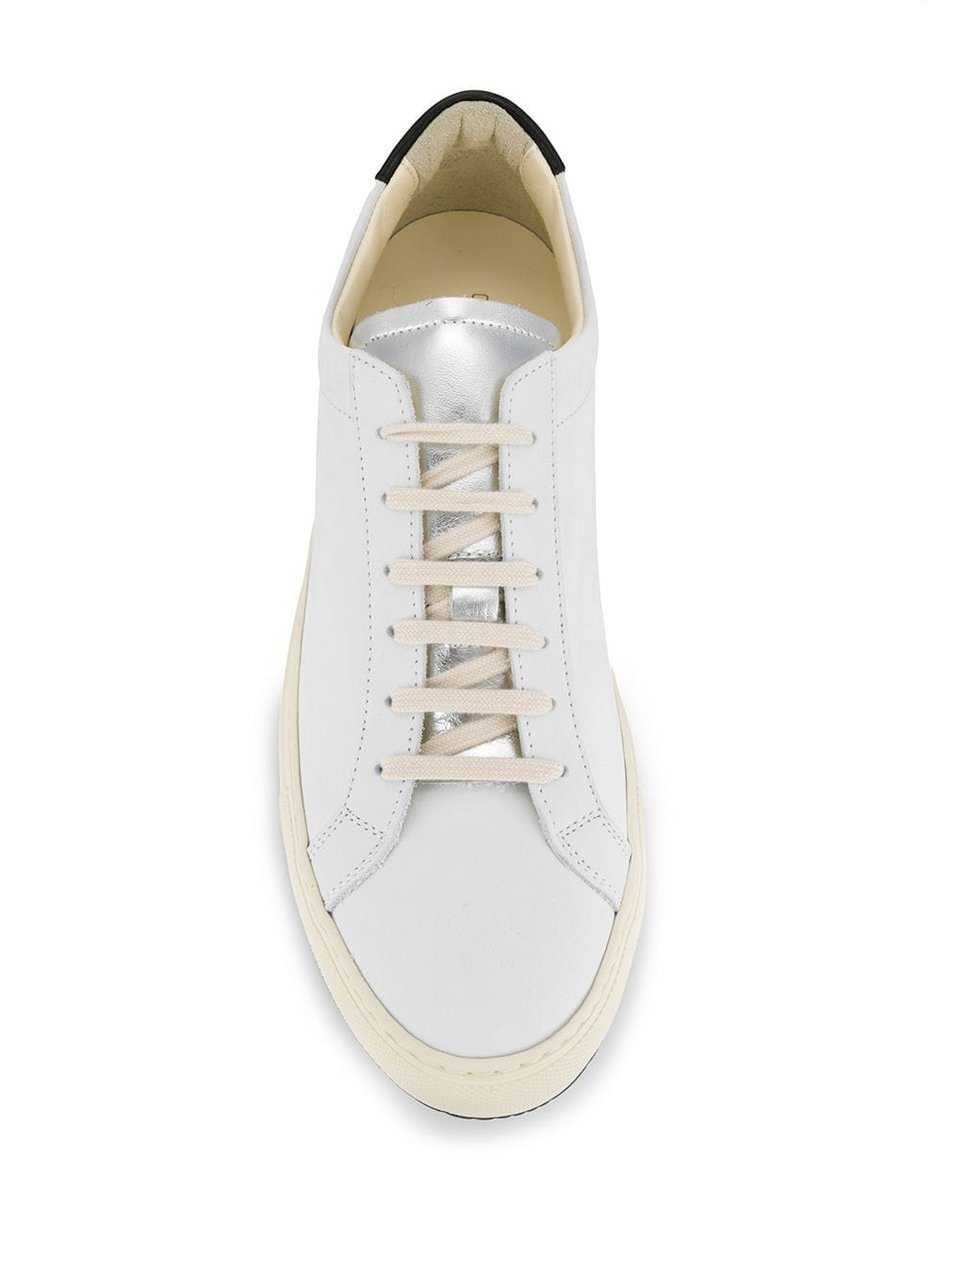 COMMON PROJECTS Retro Low スニーカー 5万8800円(輸入関税込み・参考価格)